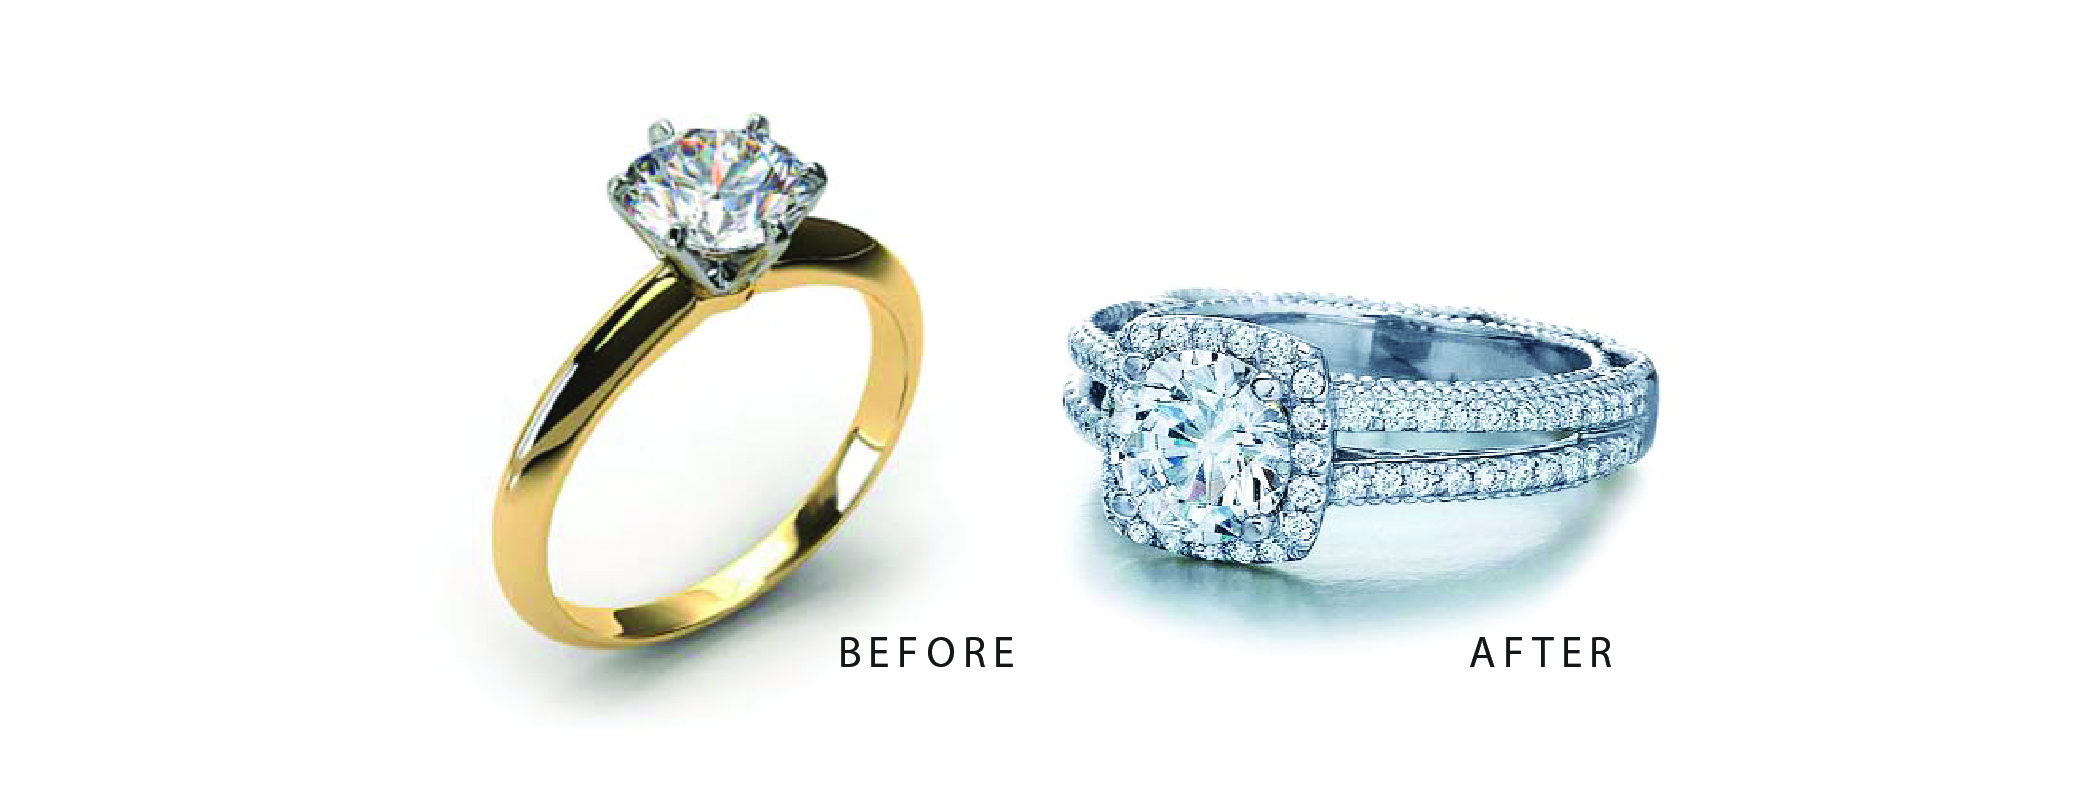 Cash for Gold: Go with a jeweler you trust.